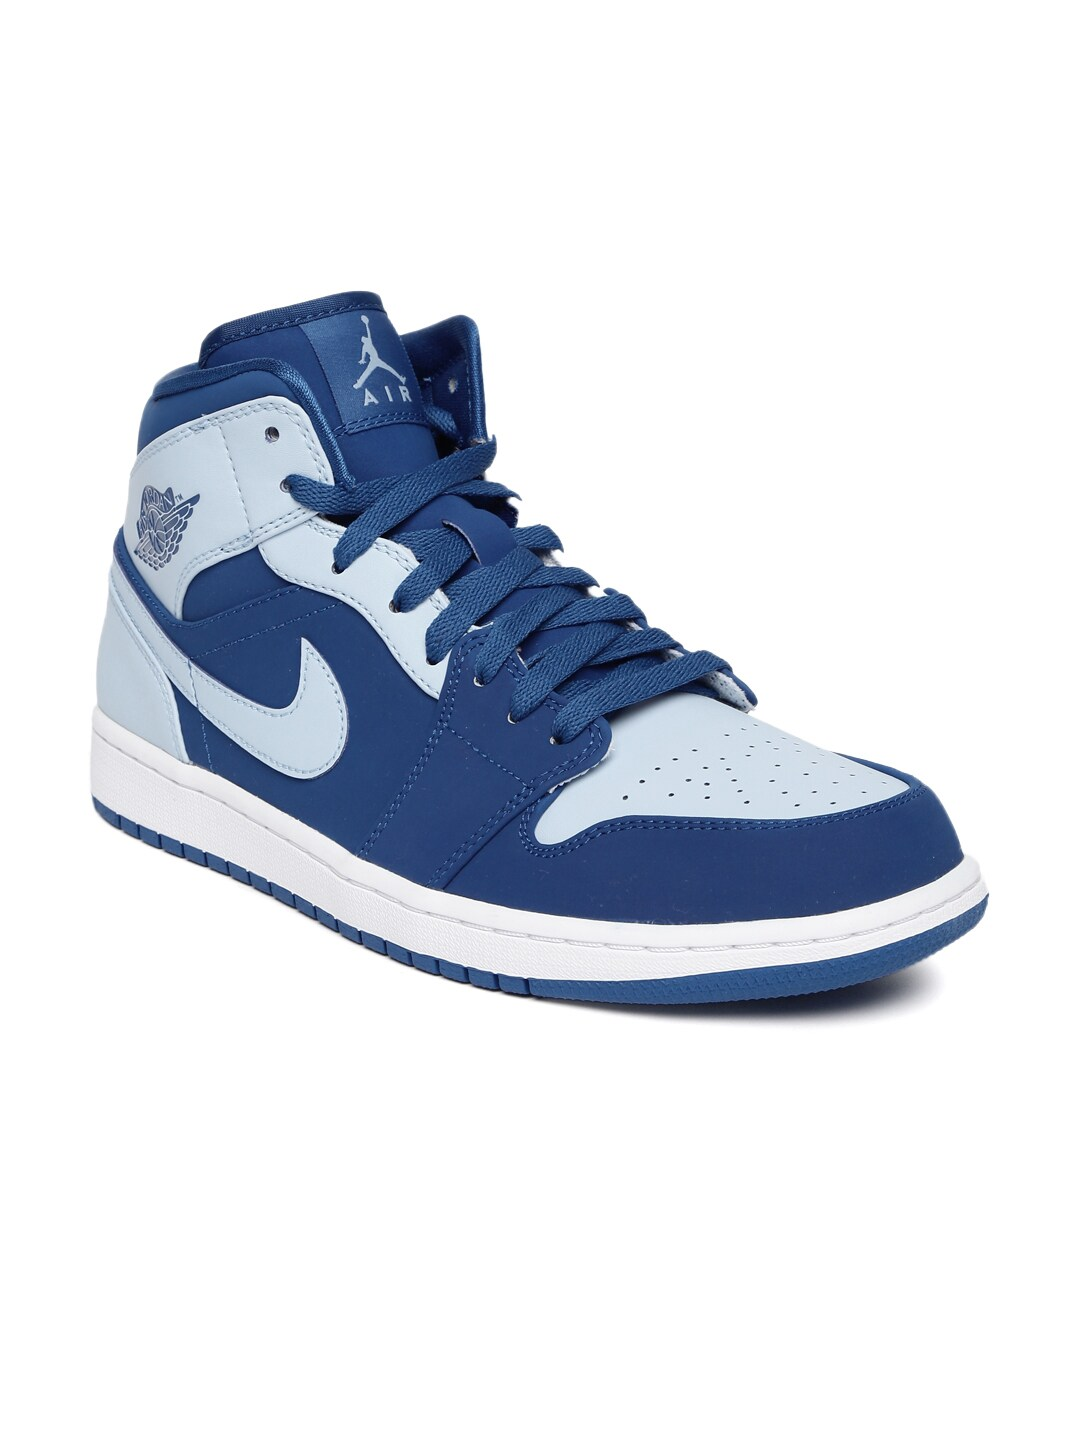 nike air jordan new school blue black mens basketball shoes. Black Bedroom Furniture Sets. Home Design Ideas